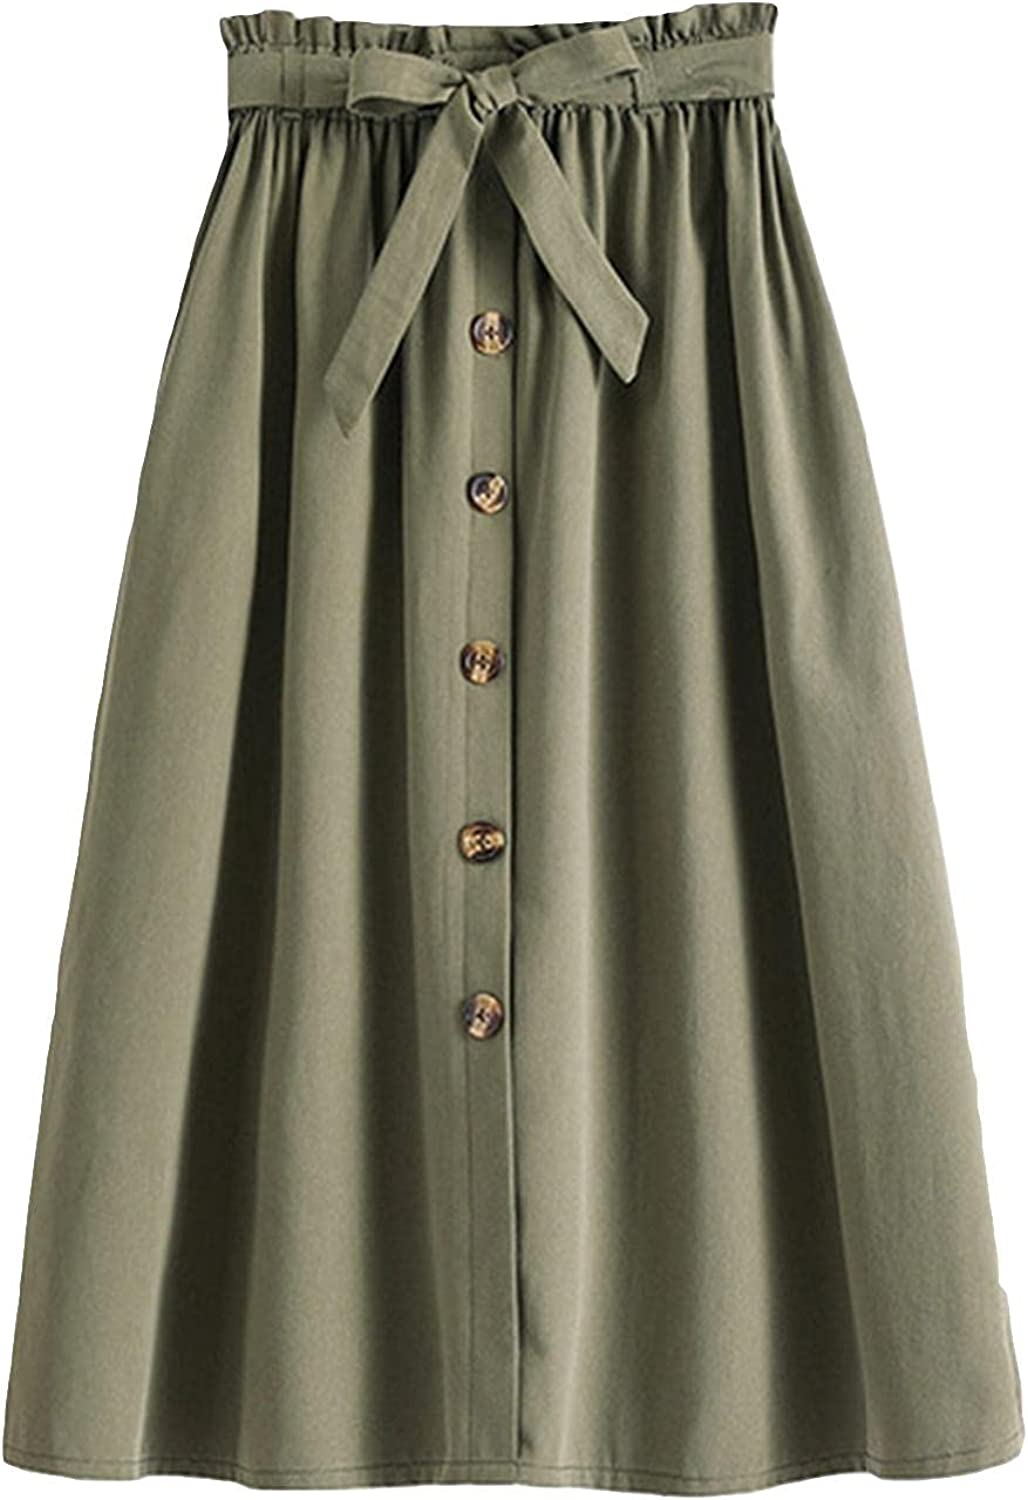 Women's Button Front Casual High Waist Belted Midi Flare Long Skirt